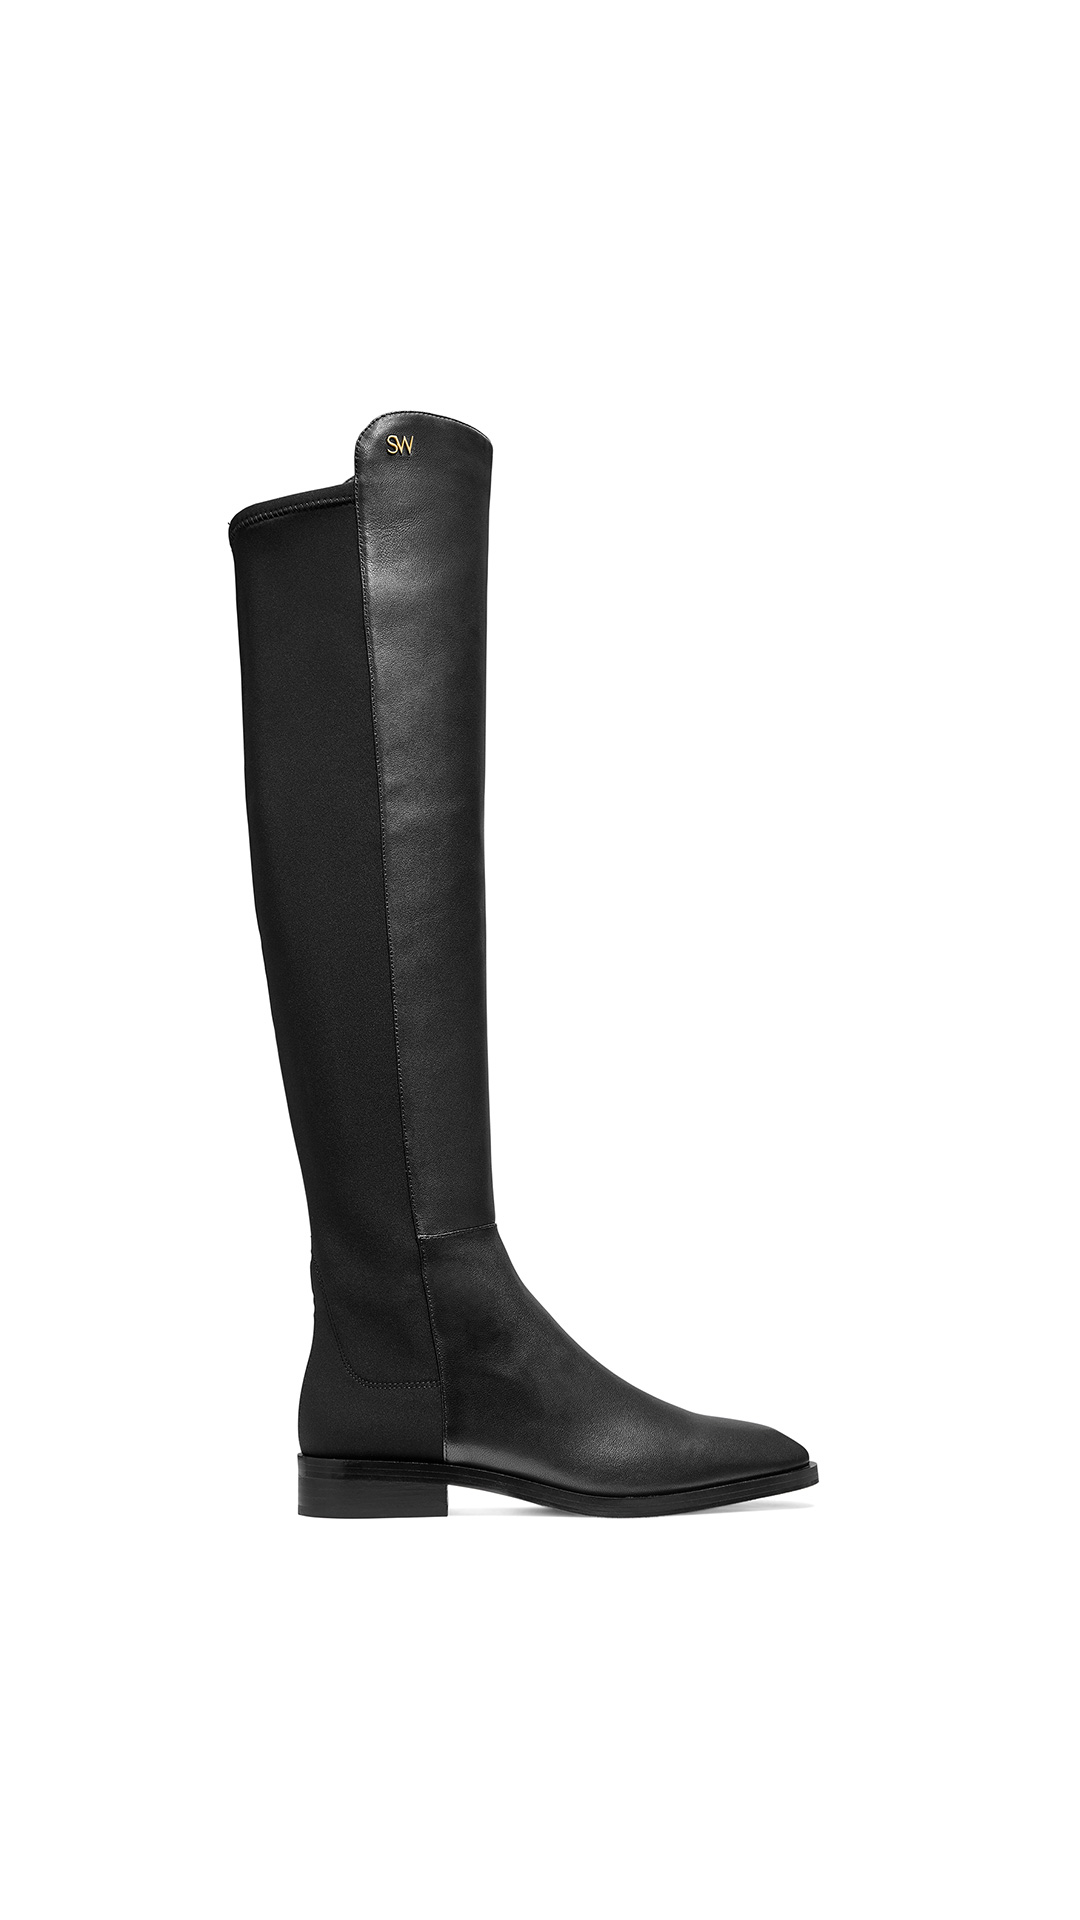 Stuart Weitzman keelan black at The Bicester Village Shopping Collection